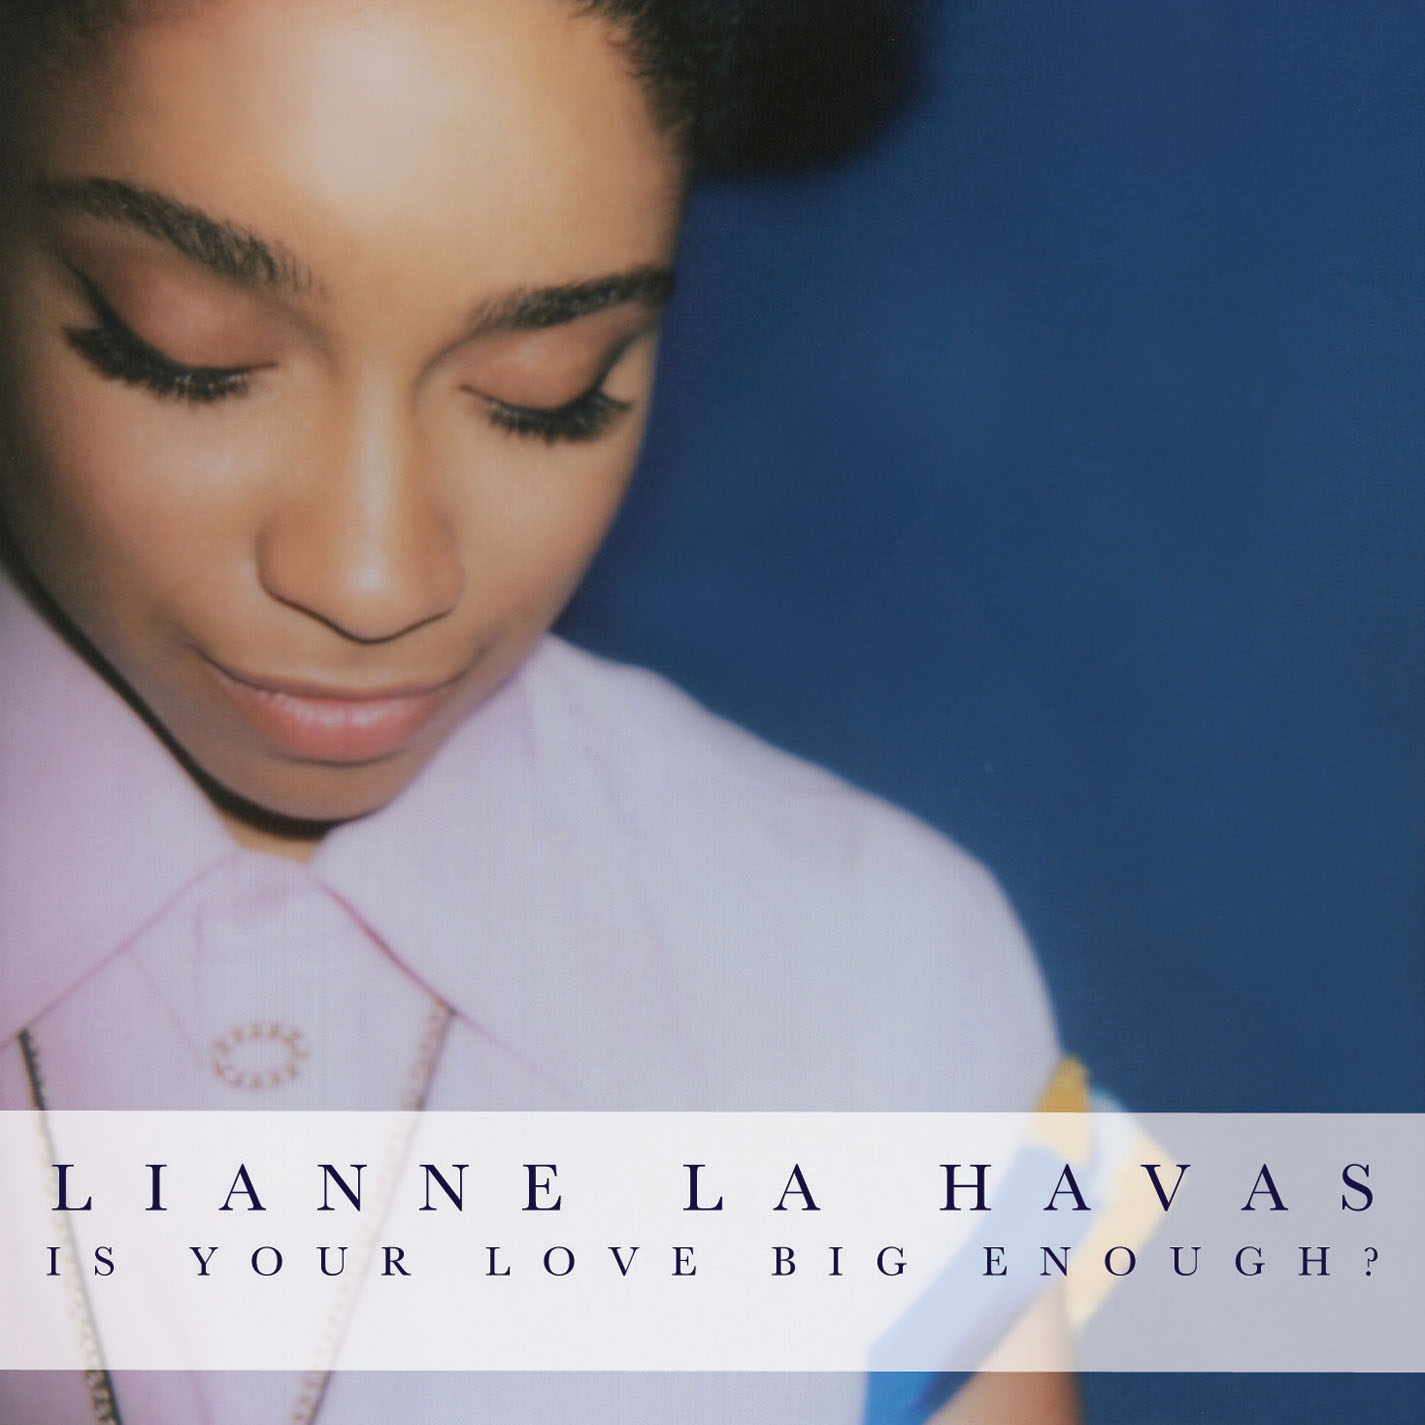 Lianne La Havas – Is Your Love Big Enough?